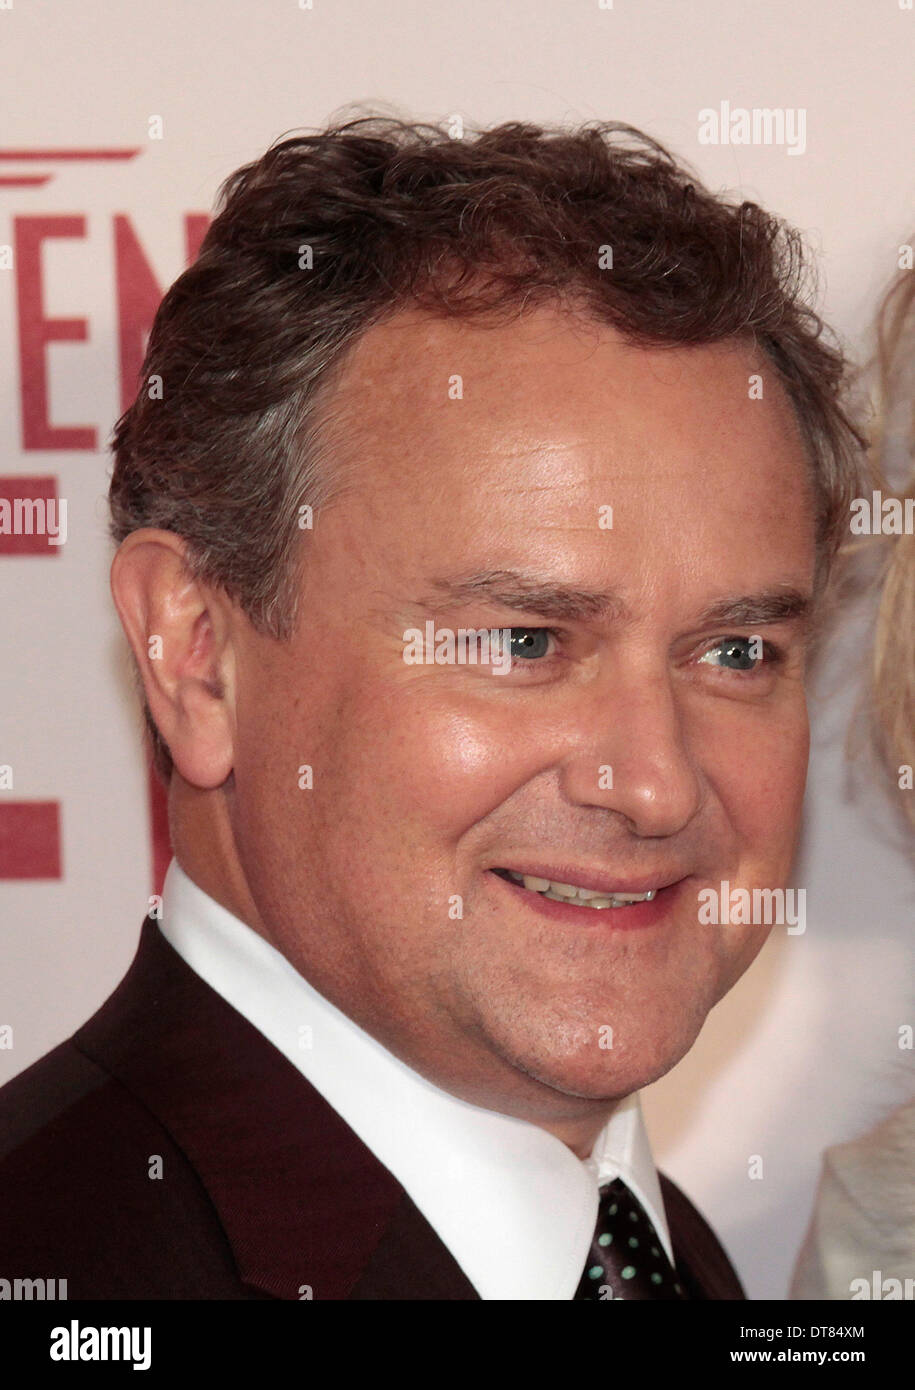 London, UK, 11th February 2014 Hugh Bonneville arrives at the UK Premiere of 'The Monuments Men'' at the Odeon Leicester Square Photo: MRP Credit:  MRP/Alamy Live News - Stock Image